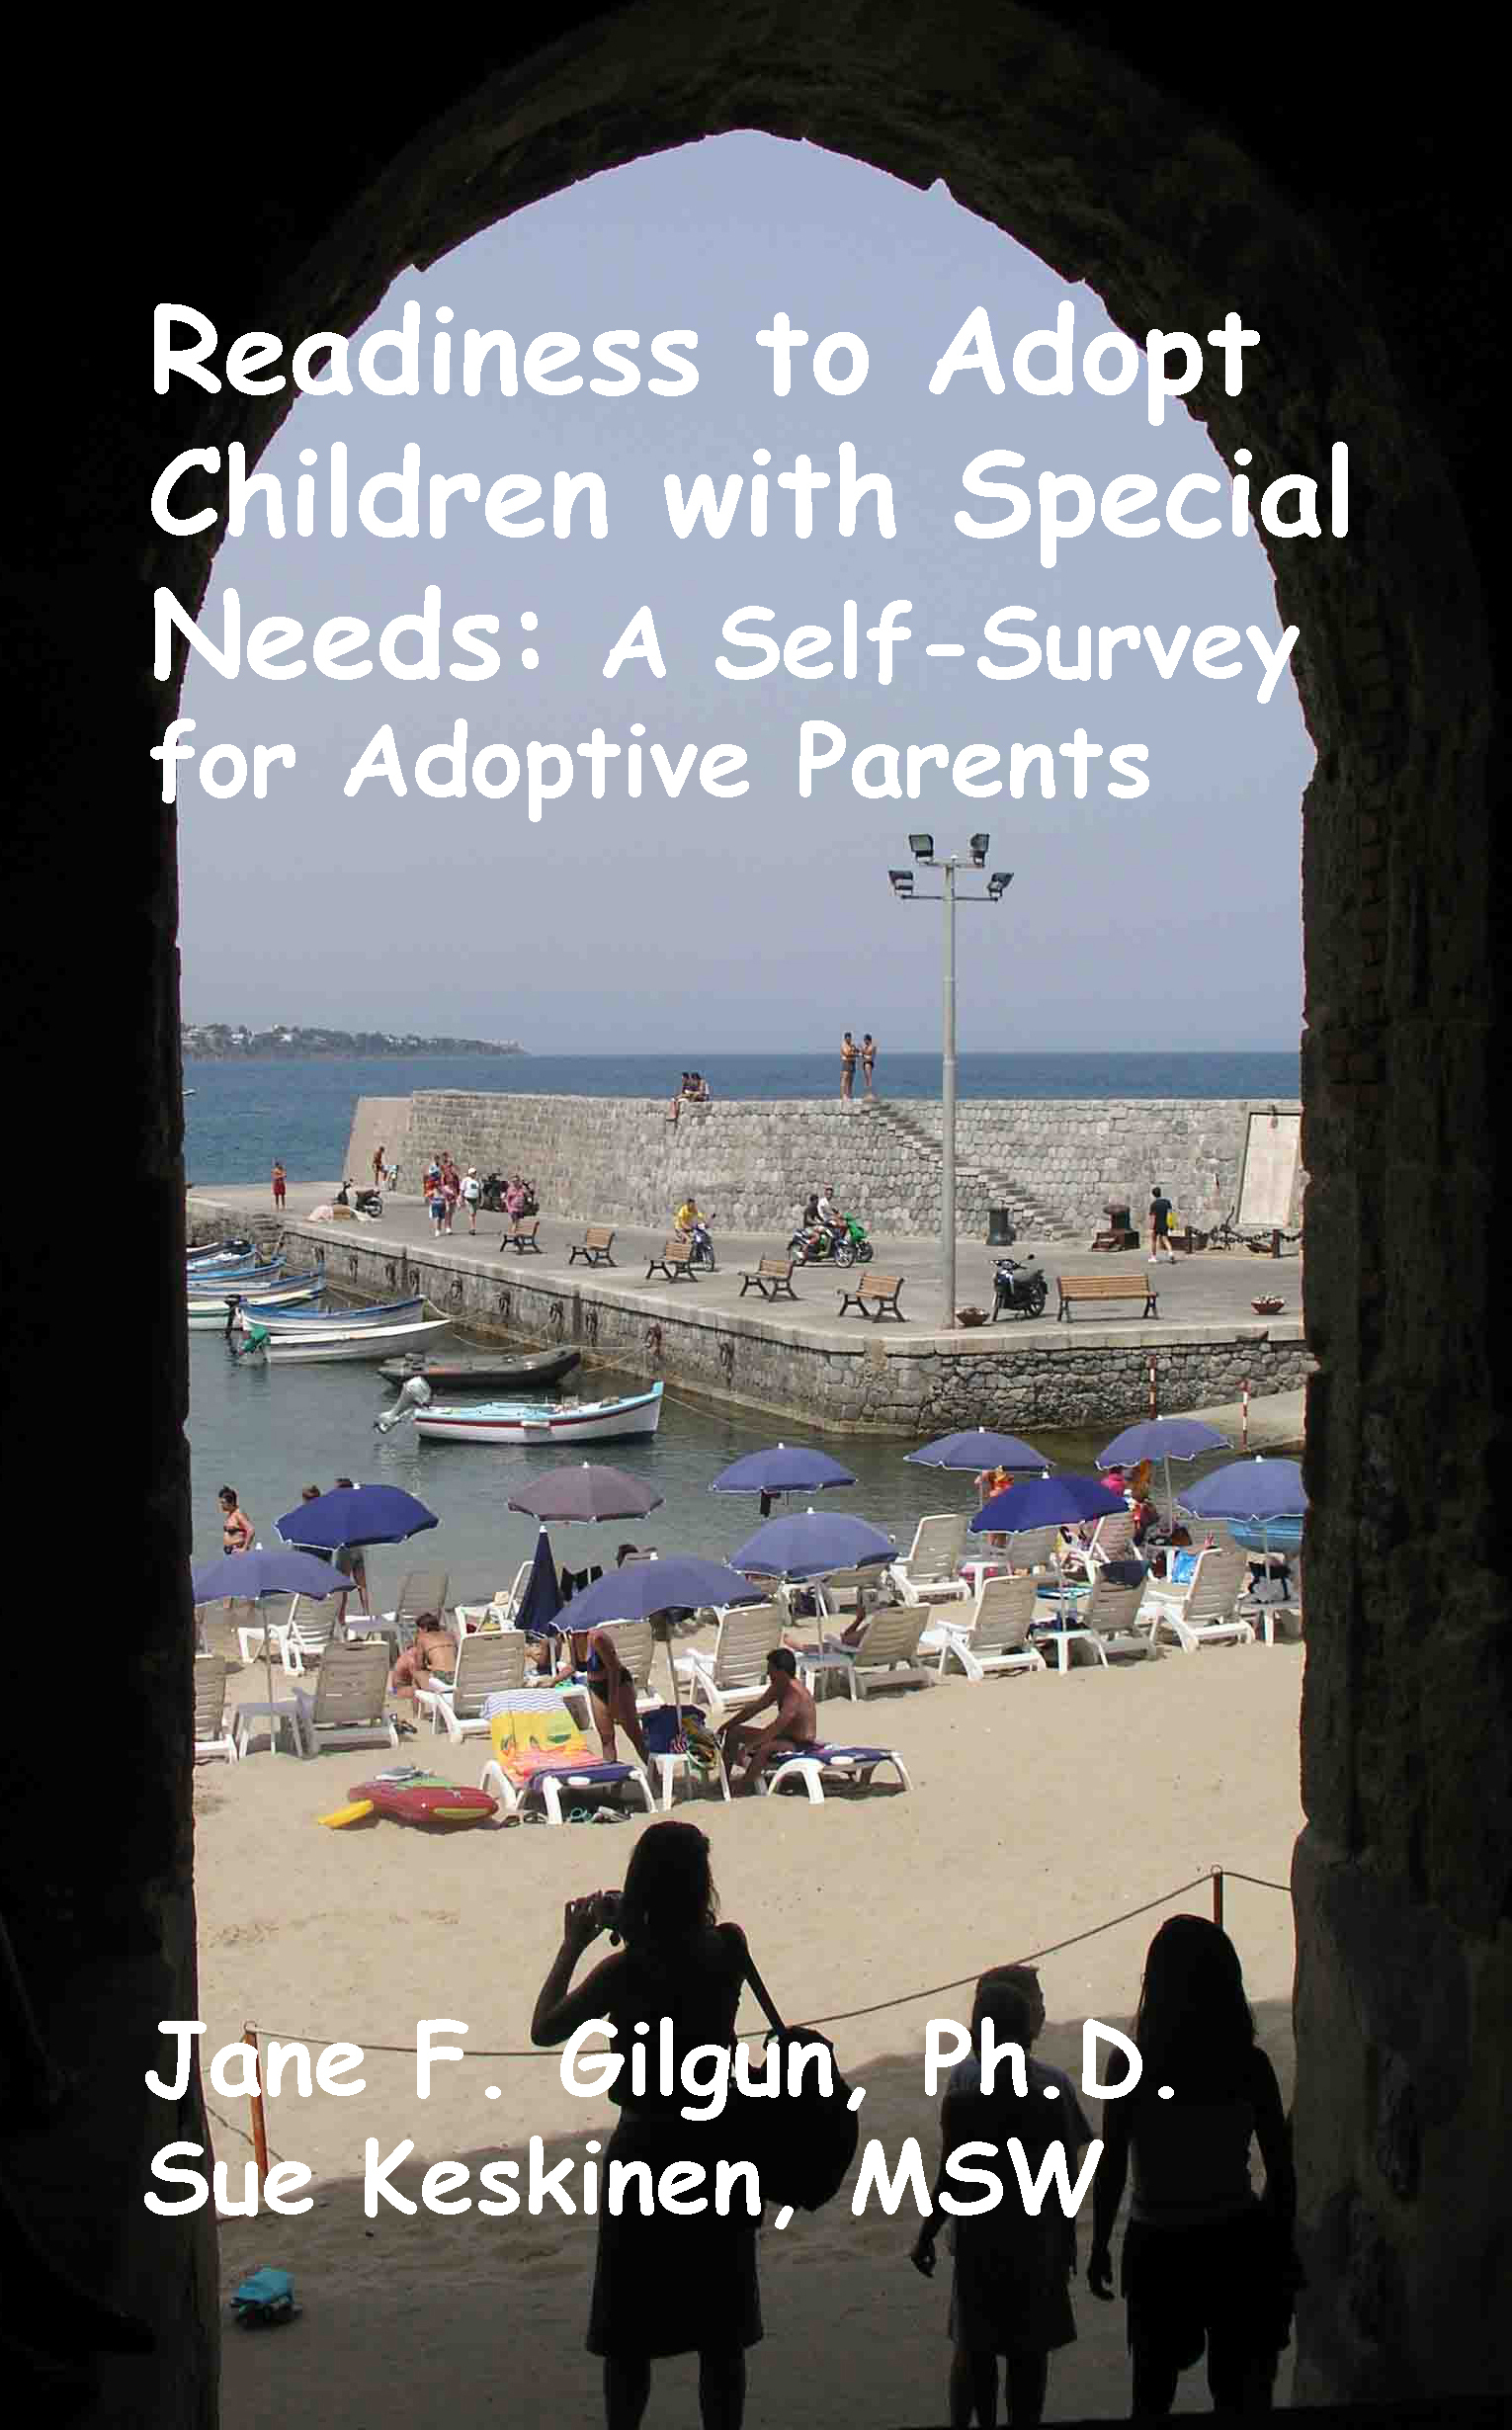 Readiness to Adopt Children with Special Needs: A Self-Survey for Prospective Adoptive Parents